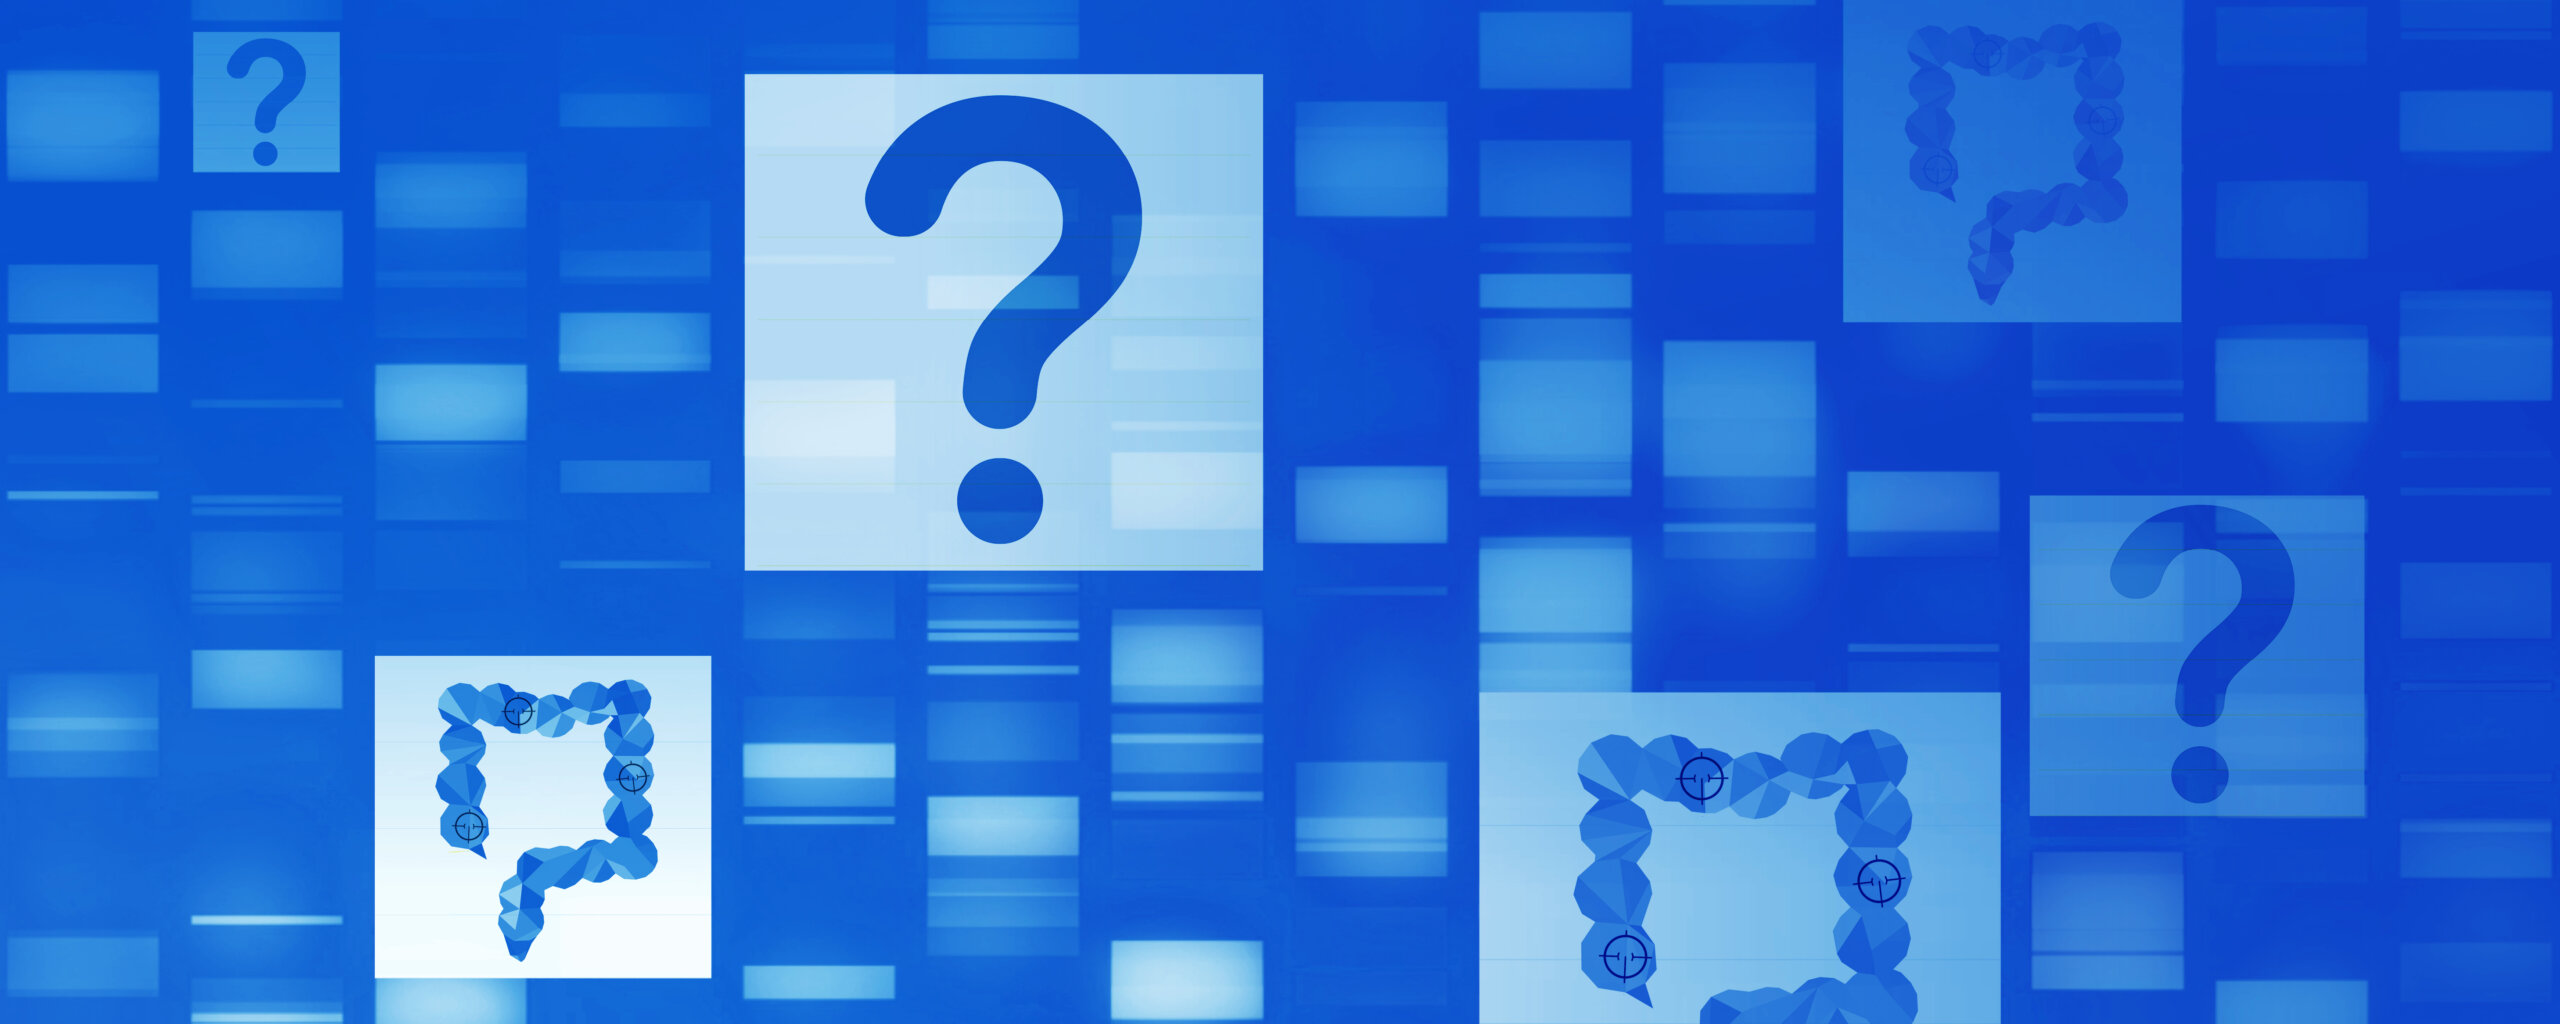 Frequently Asked Questions on the Management of mCRC